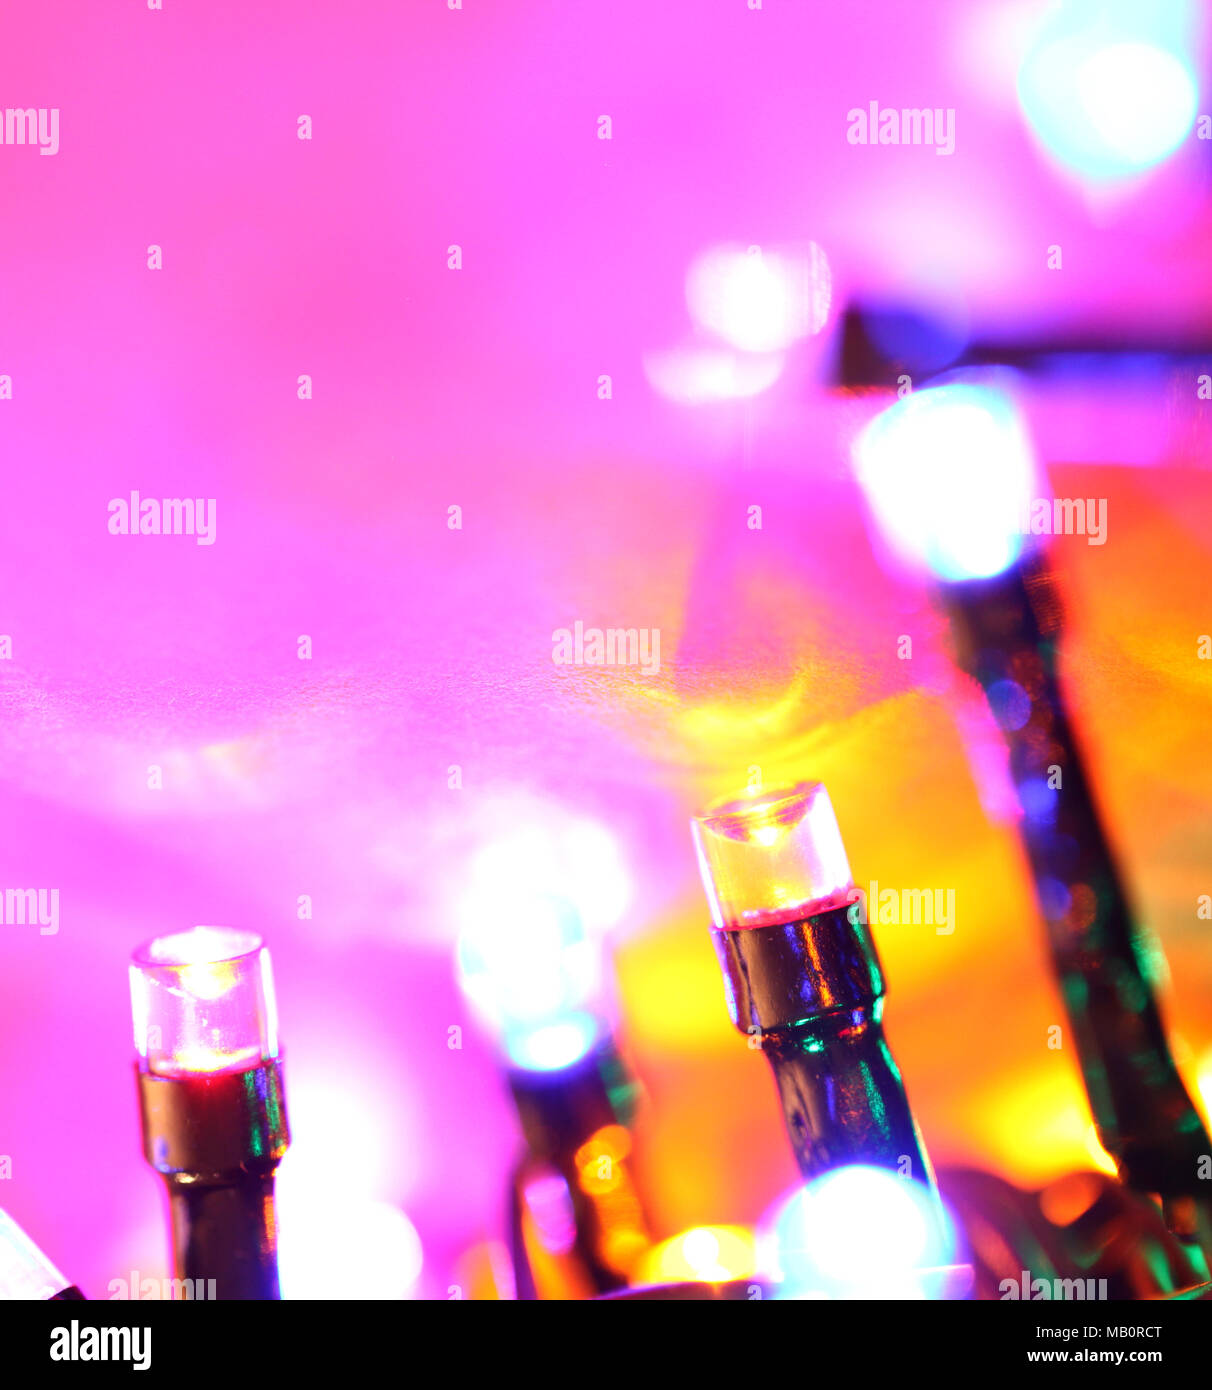 Bulbs Of Led Photo178883288 Up Blinking Stock Close Alamy 6g7fyYb